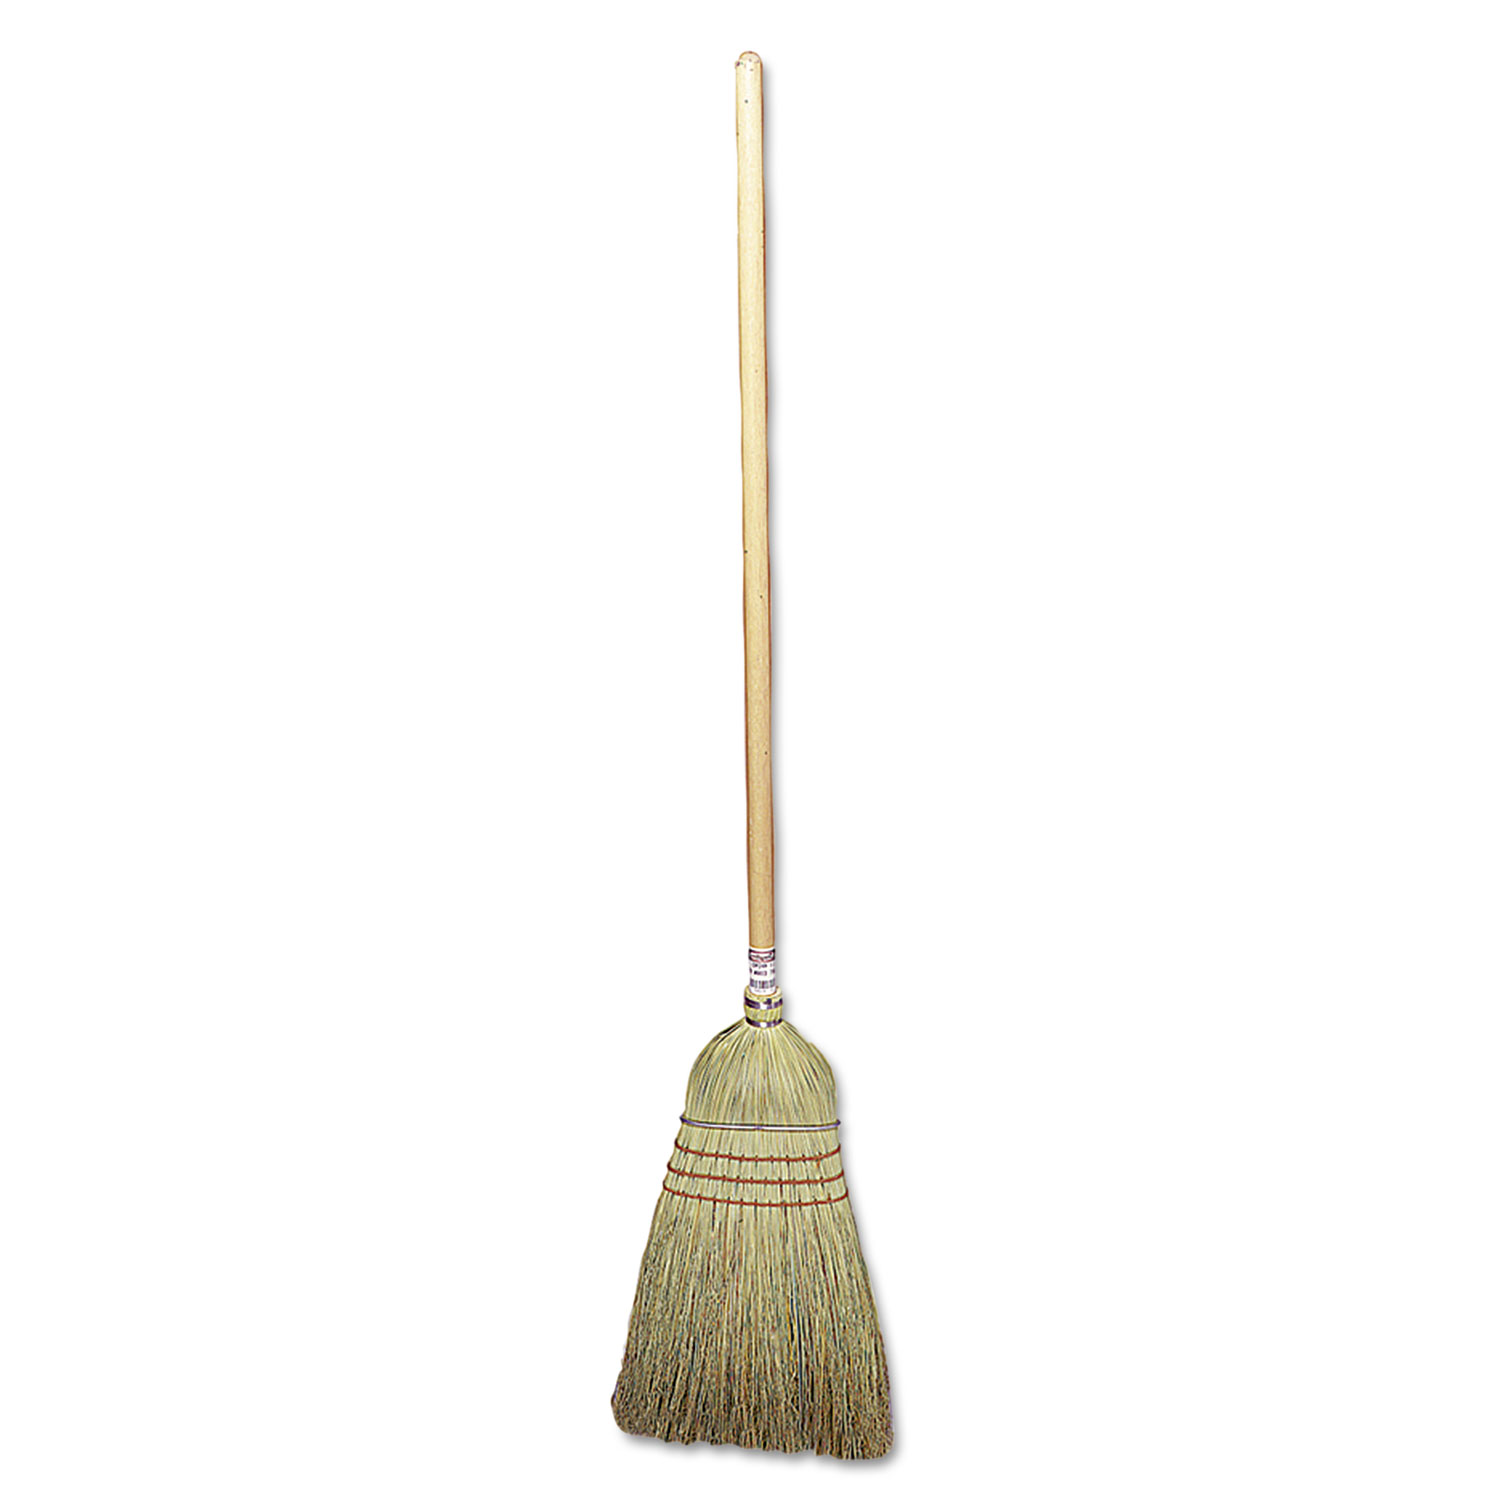 Upright/Whisk Warehouse Broom